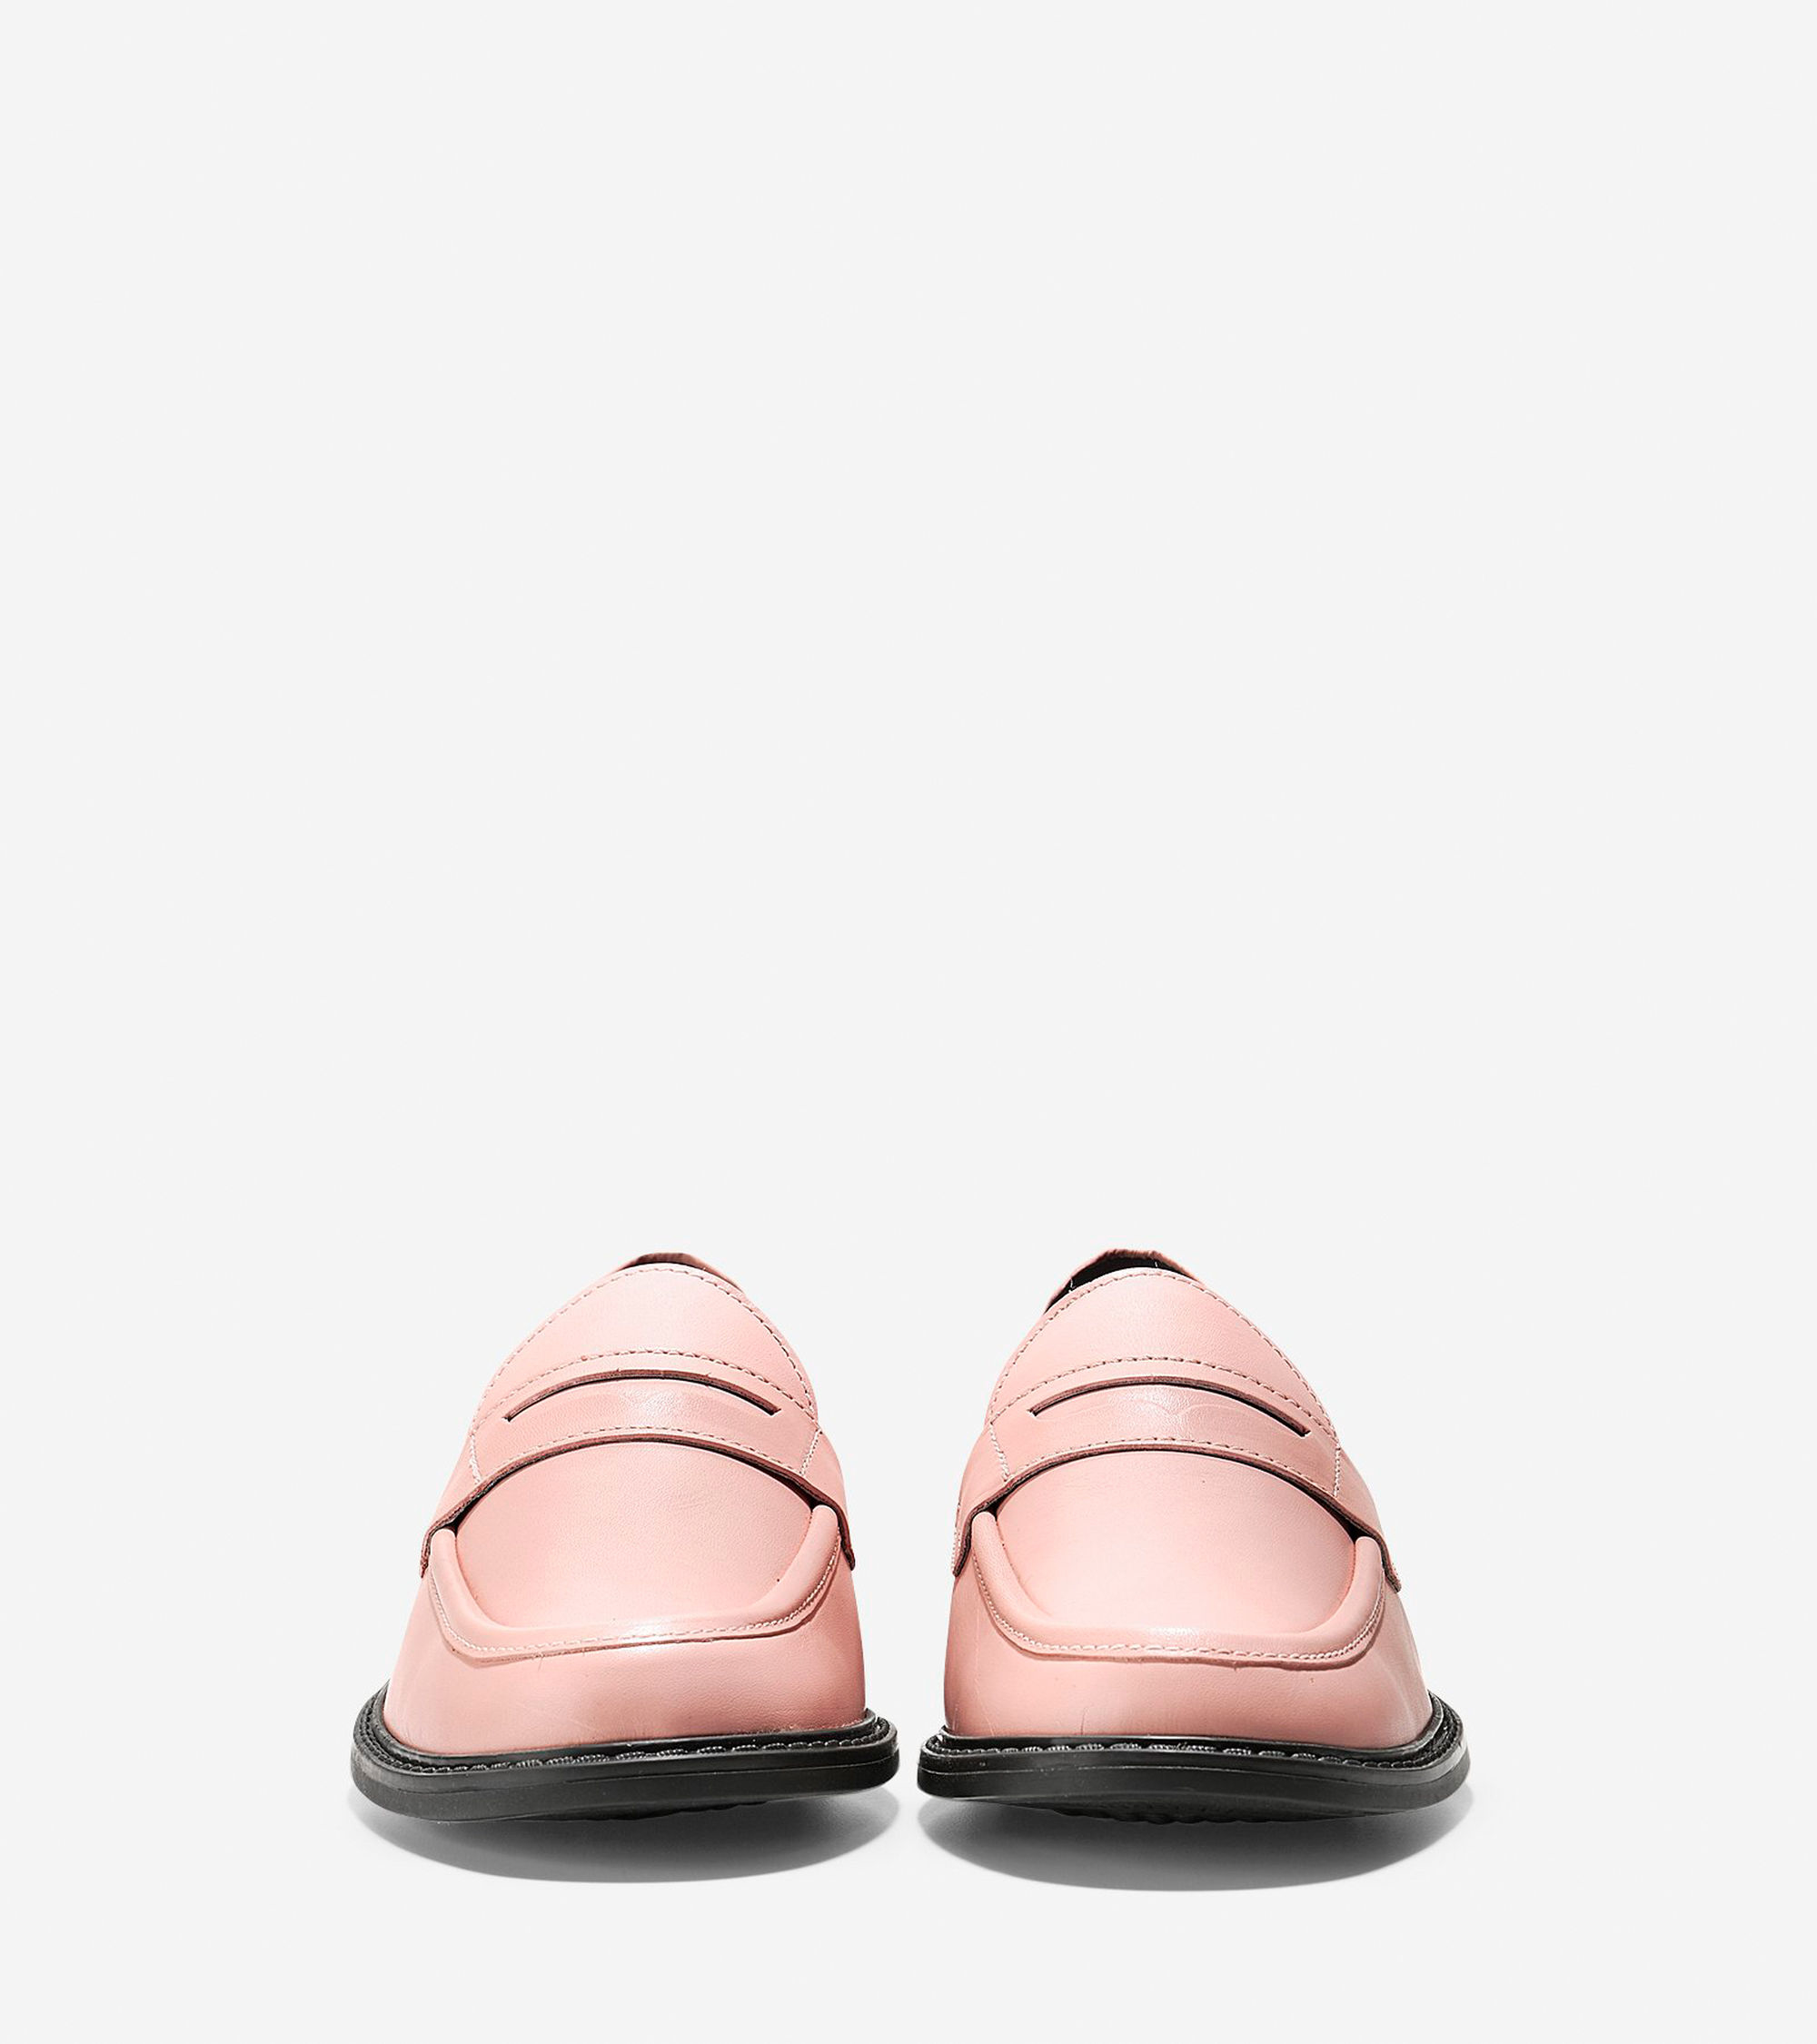 e8505352e86 Cole Haan Women s Pinch Campus Penny Loafer in Pink - Lyst